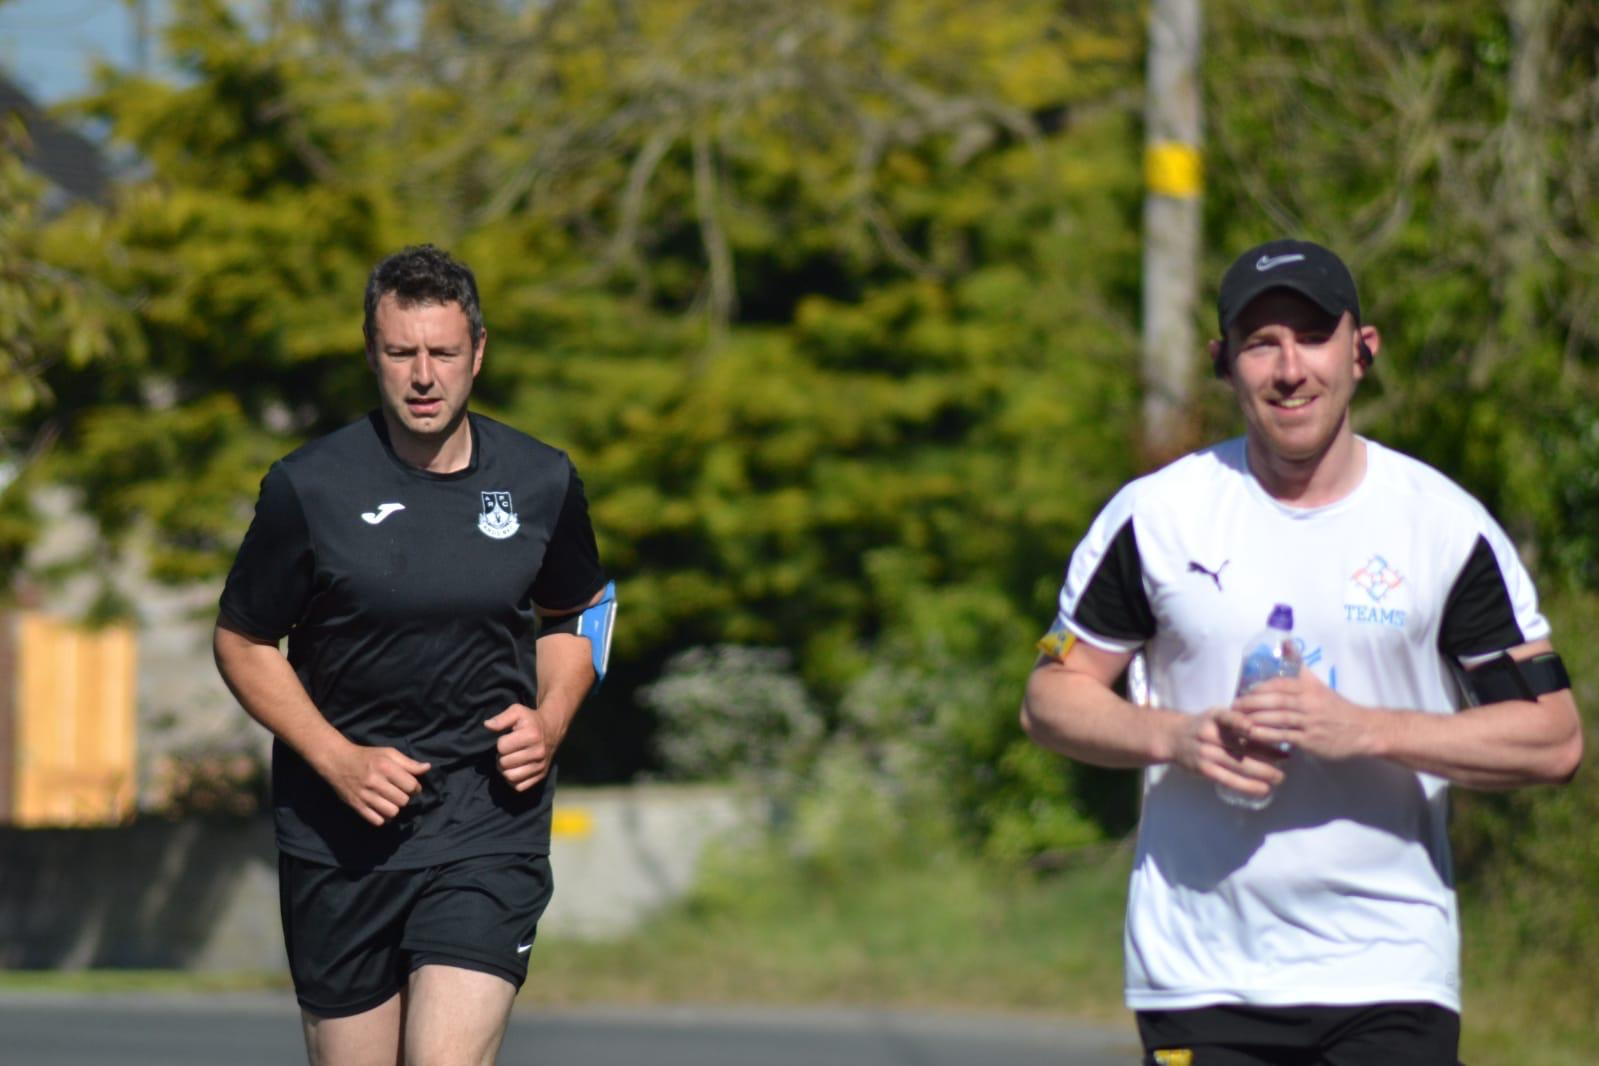 Ballycran's Chris Egan solo runs without a stick in aid of Mental Health Charities – Update 2